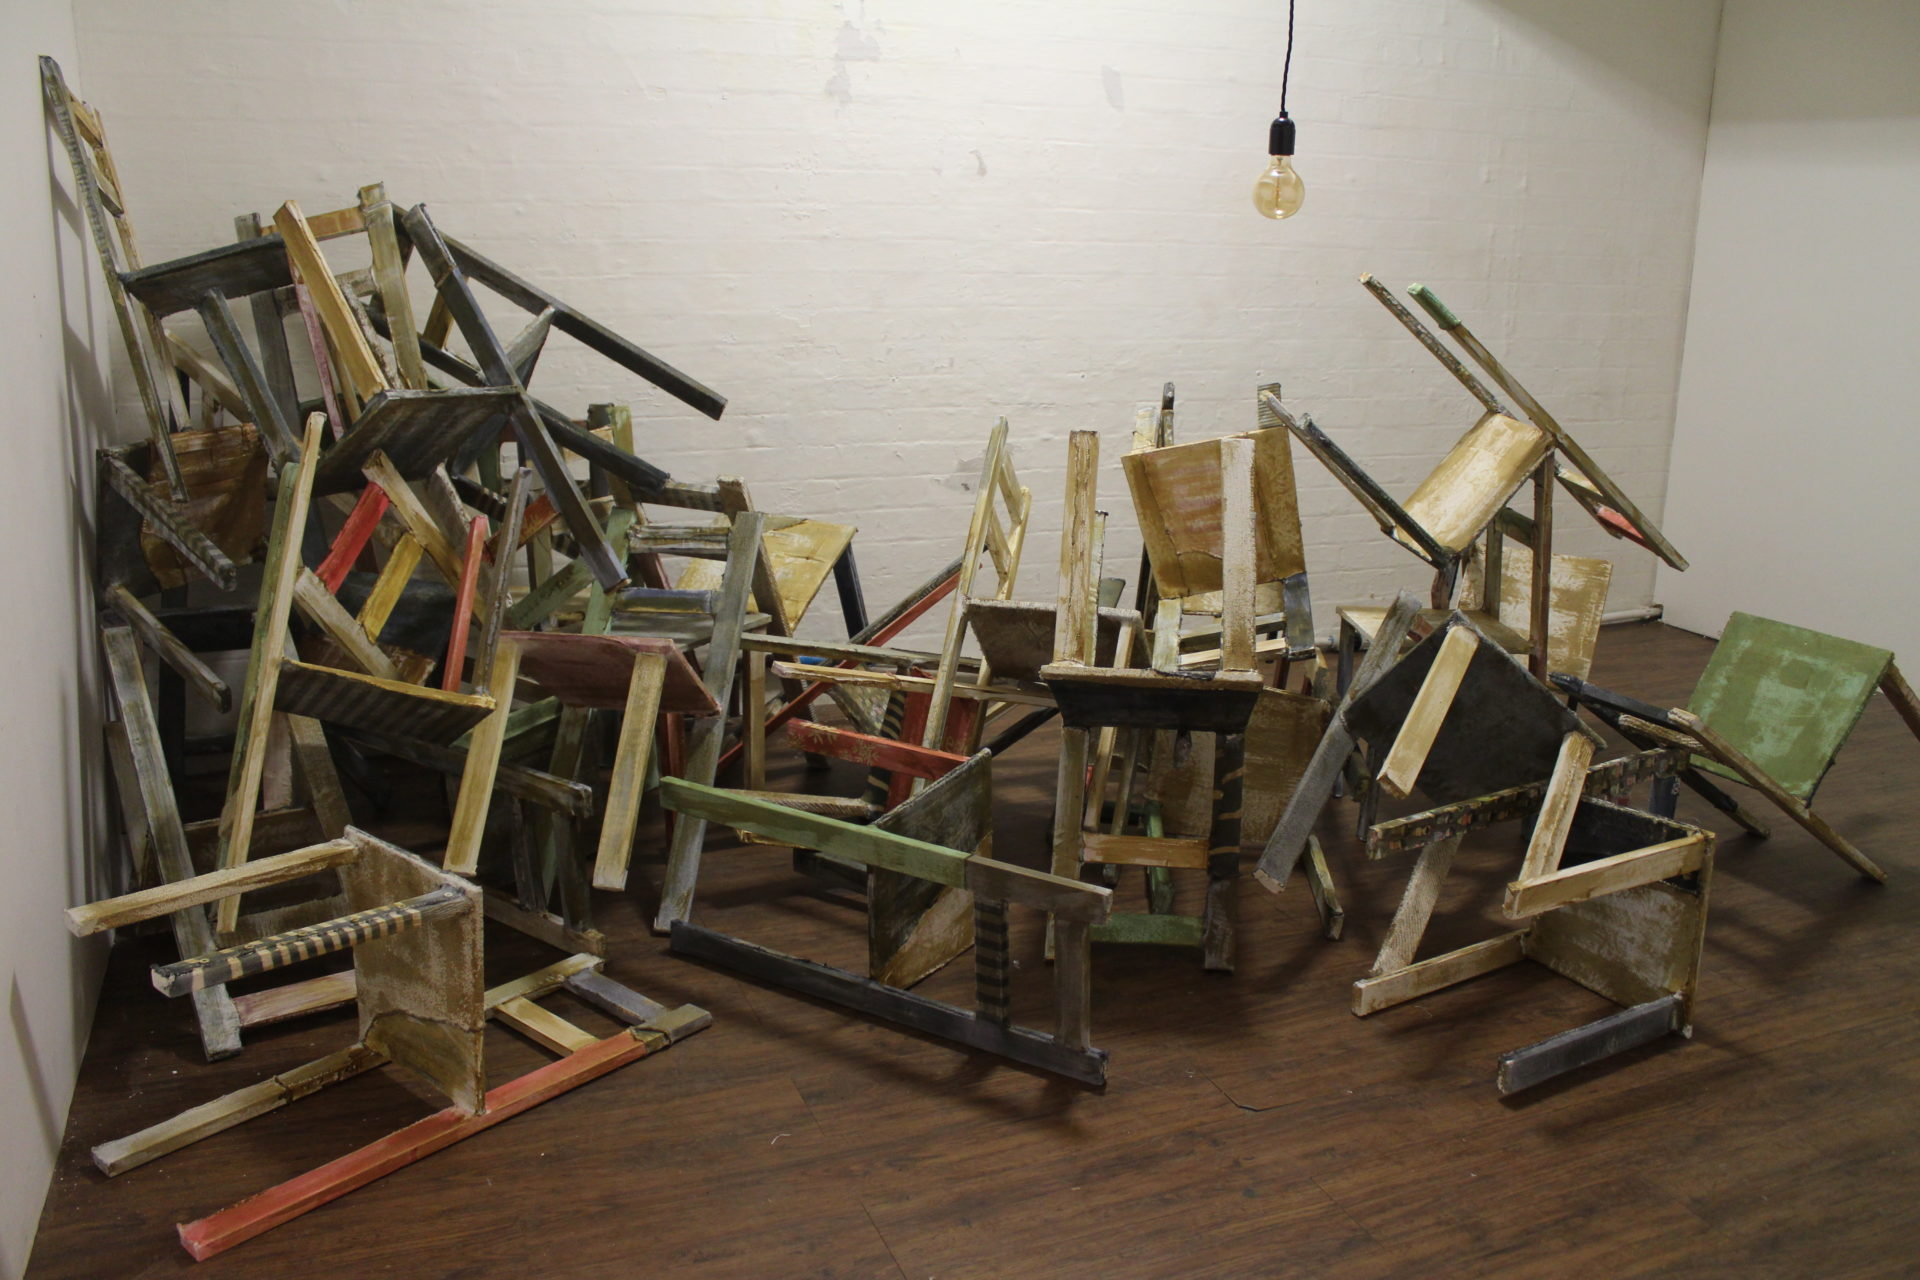 Installation of chairs piled up in a room